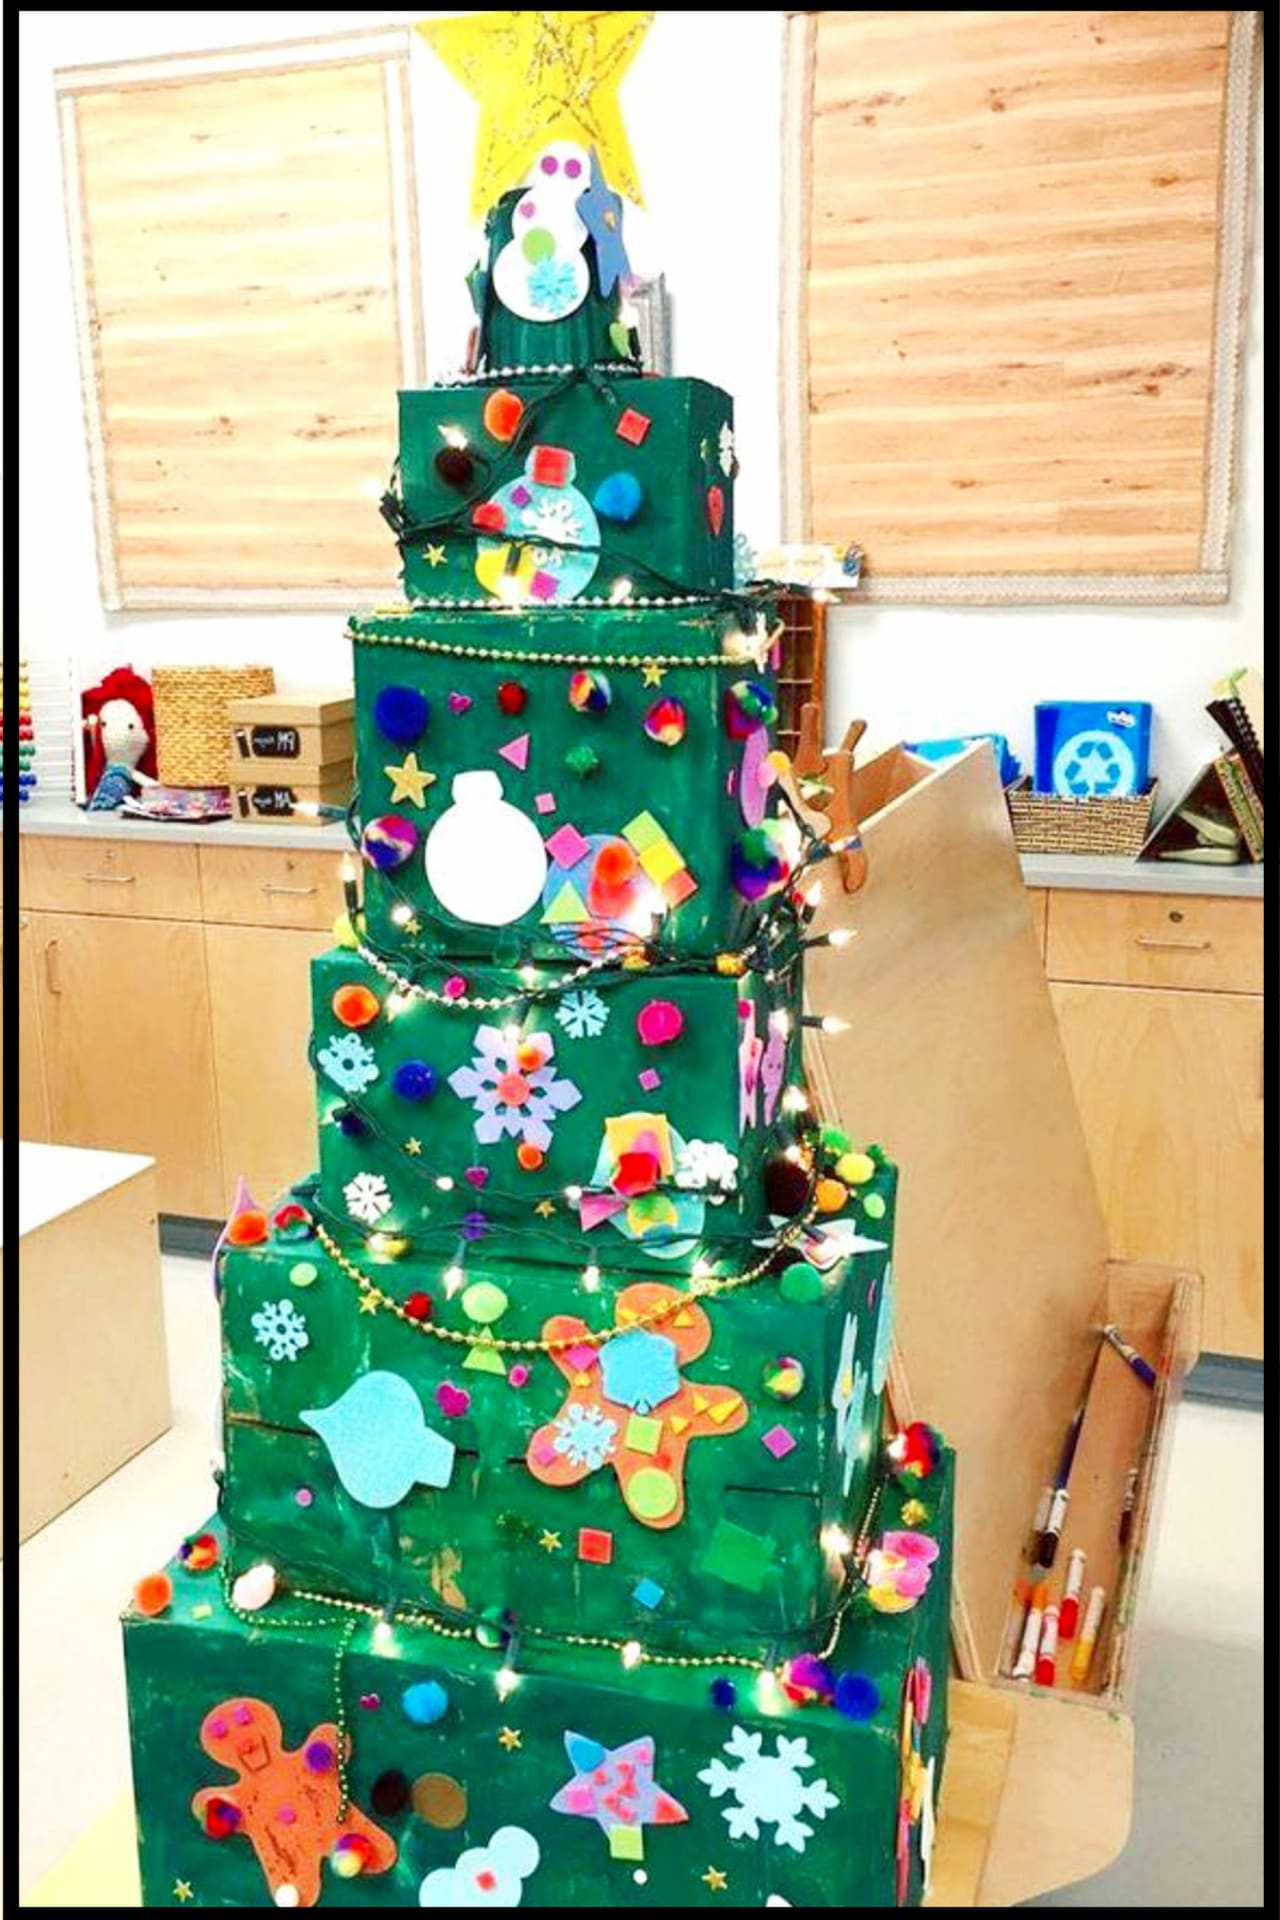 Classroom Christmas Crafts for Kids - LOVE this Christmas tree craft project for the kids in Prek, Kindergarten, Daycare etc - stack boxes in a Christmas tree shape, paint, and let the kids decorate with their Christmas paper crafts